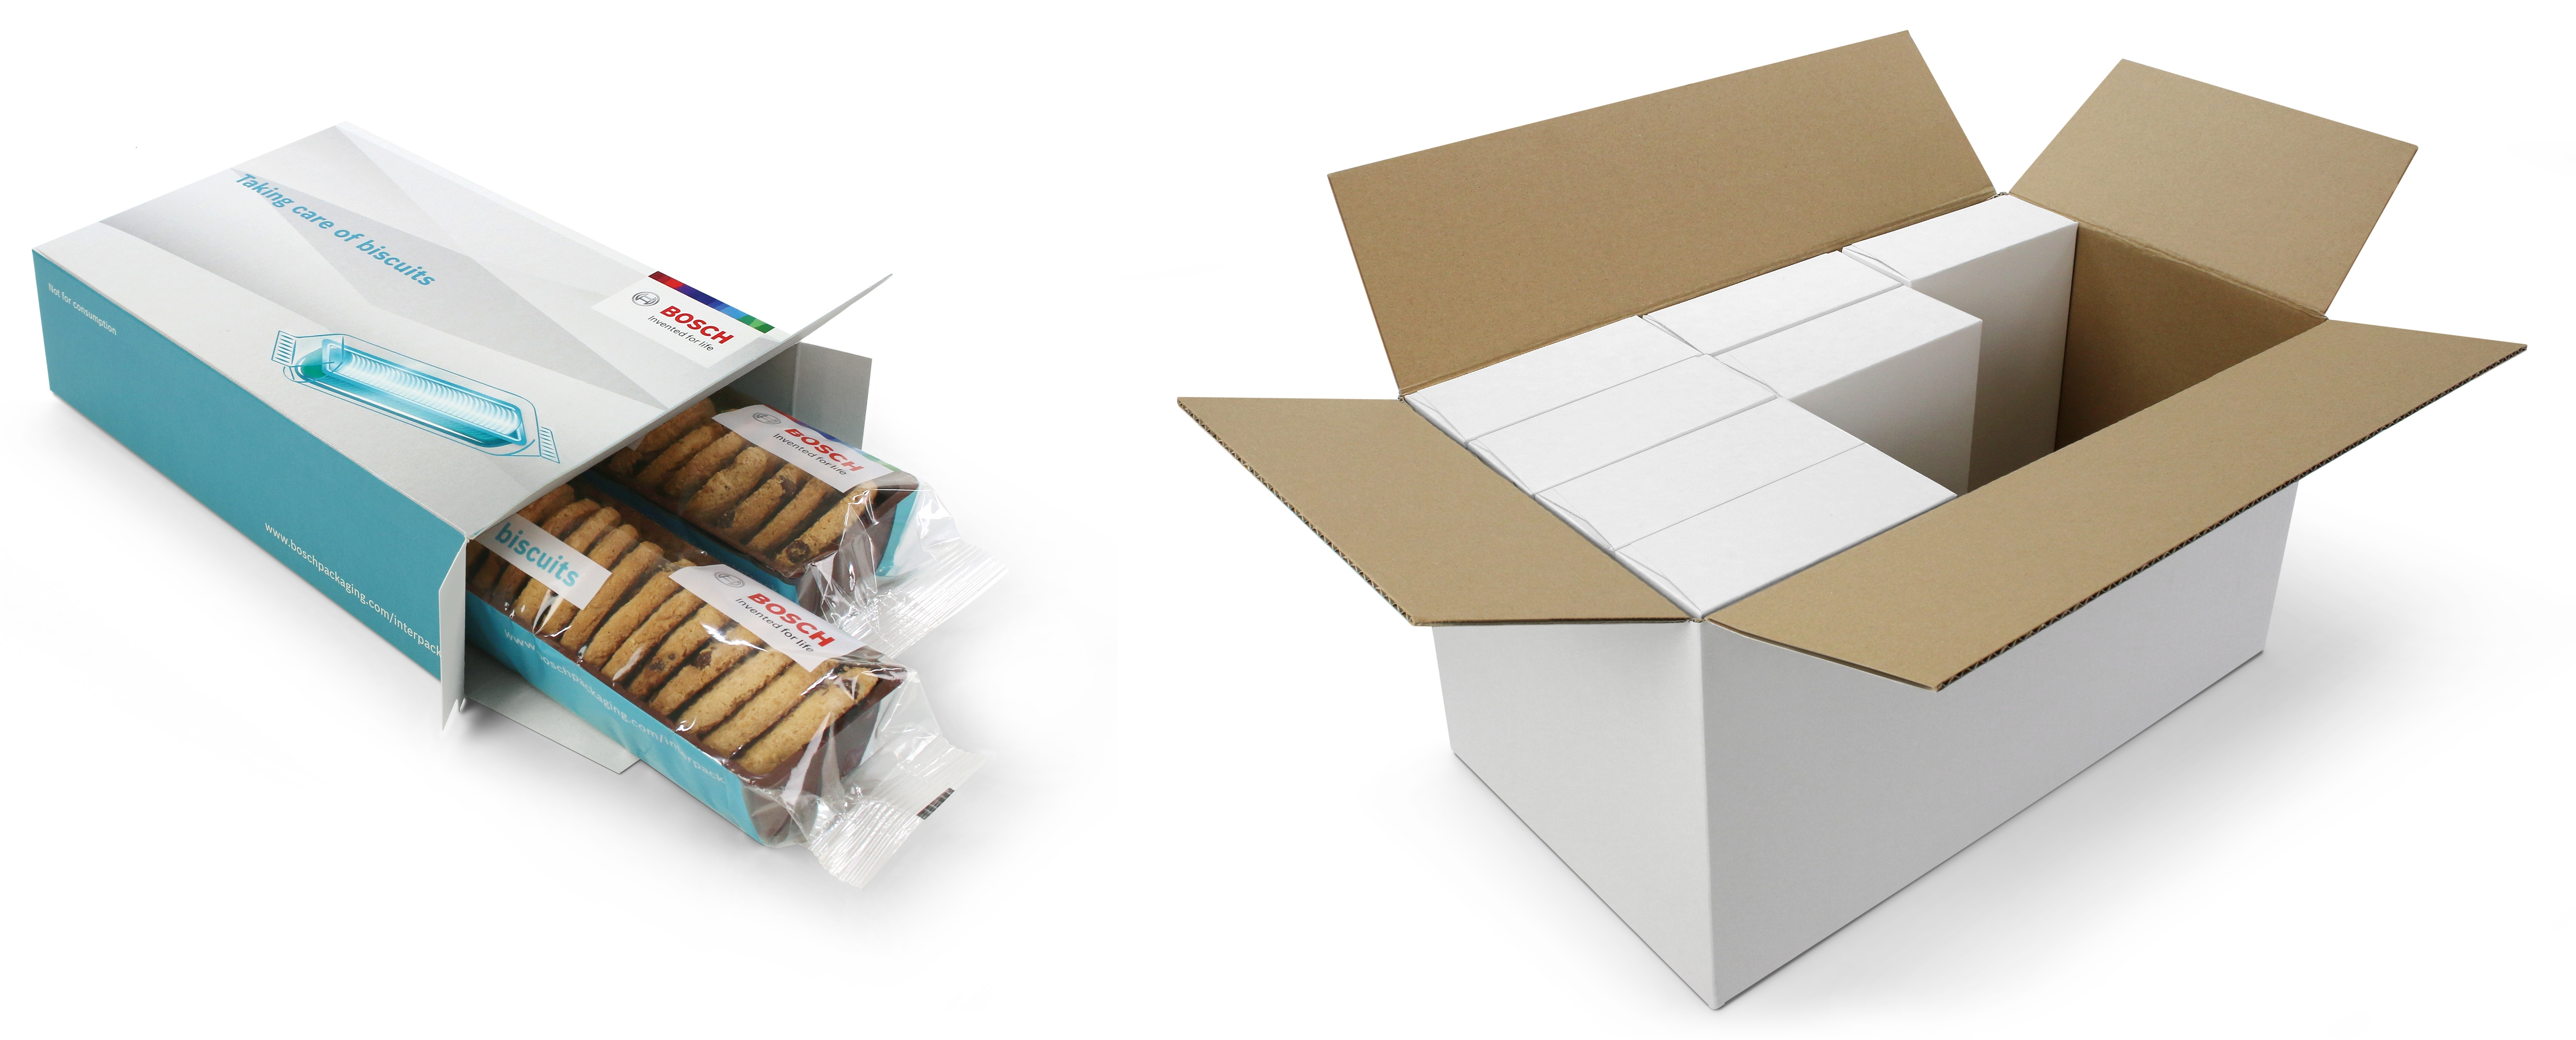 Biscuit-on-edge packaging system